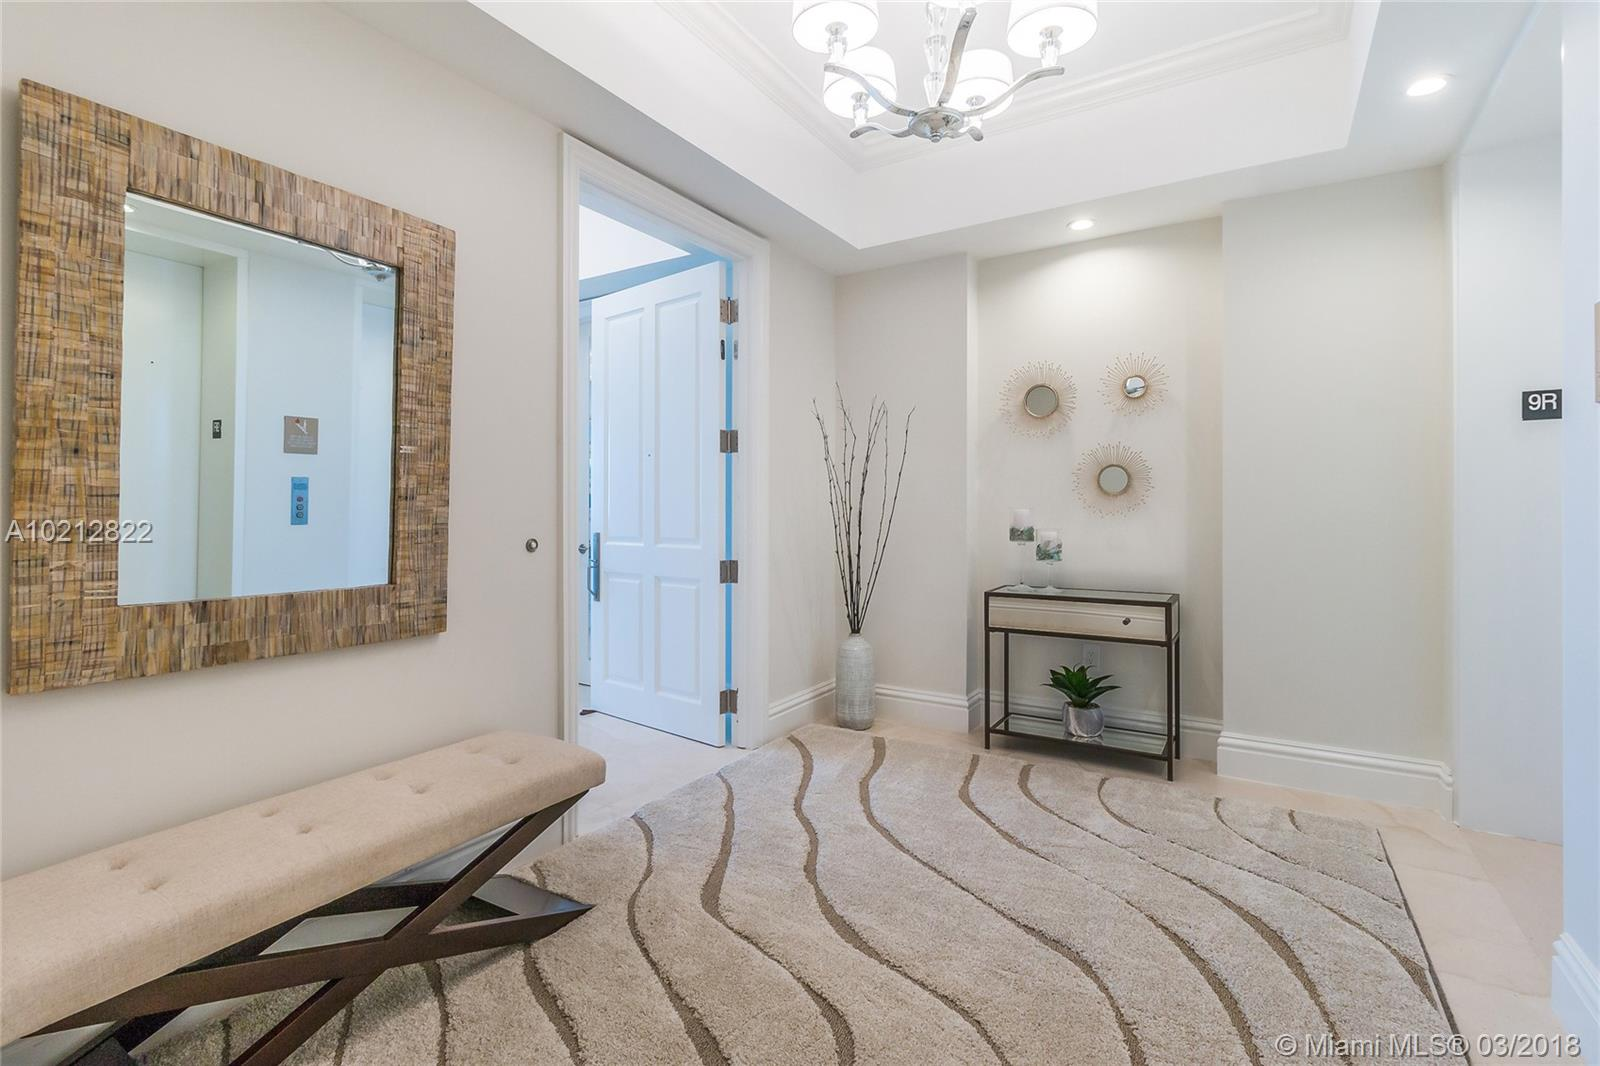 10295  Collins Ave #906 For Sale A10212822, FL